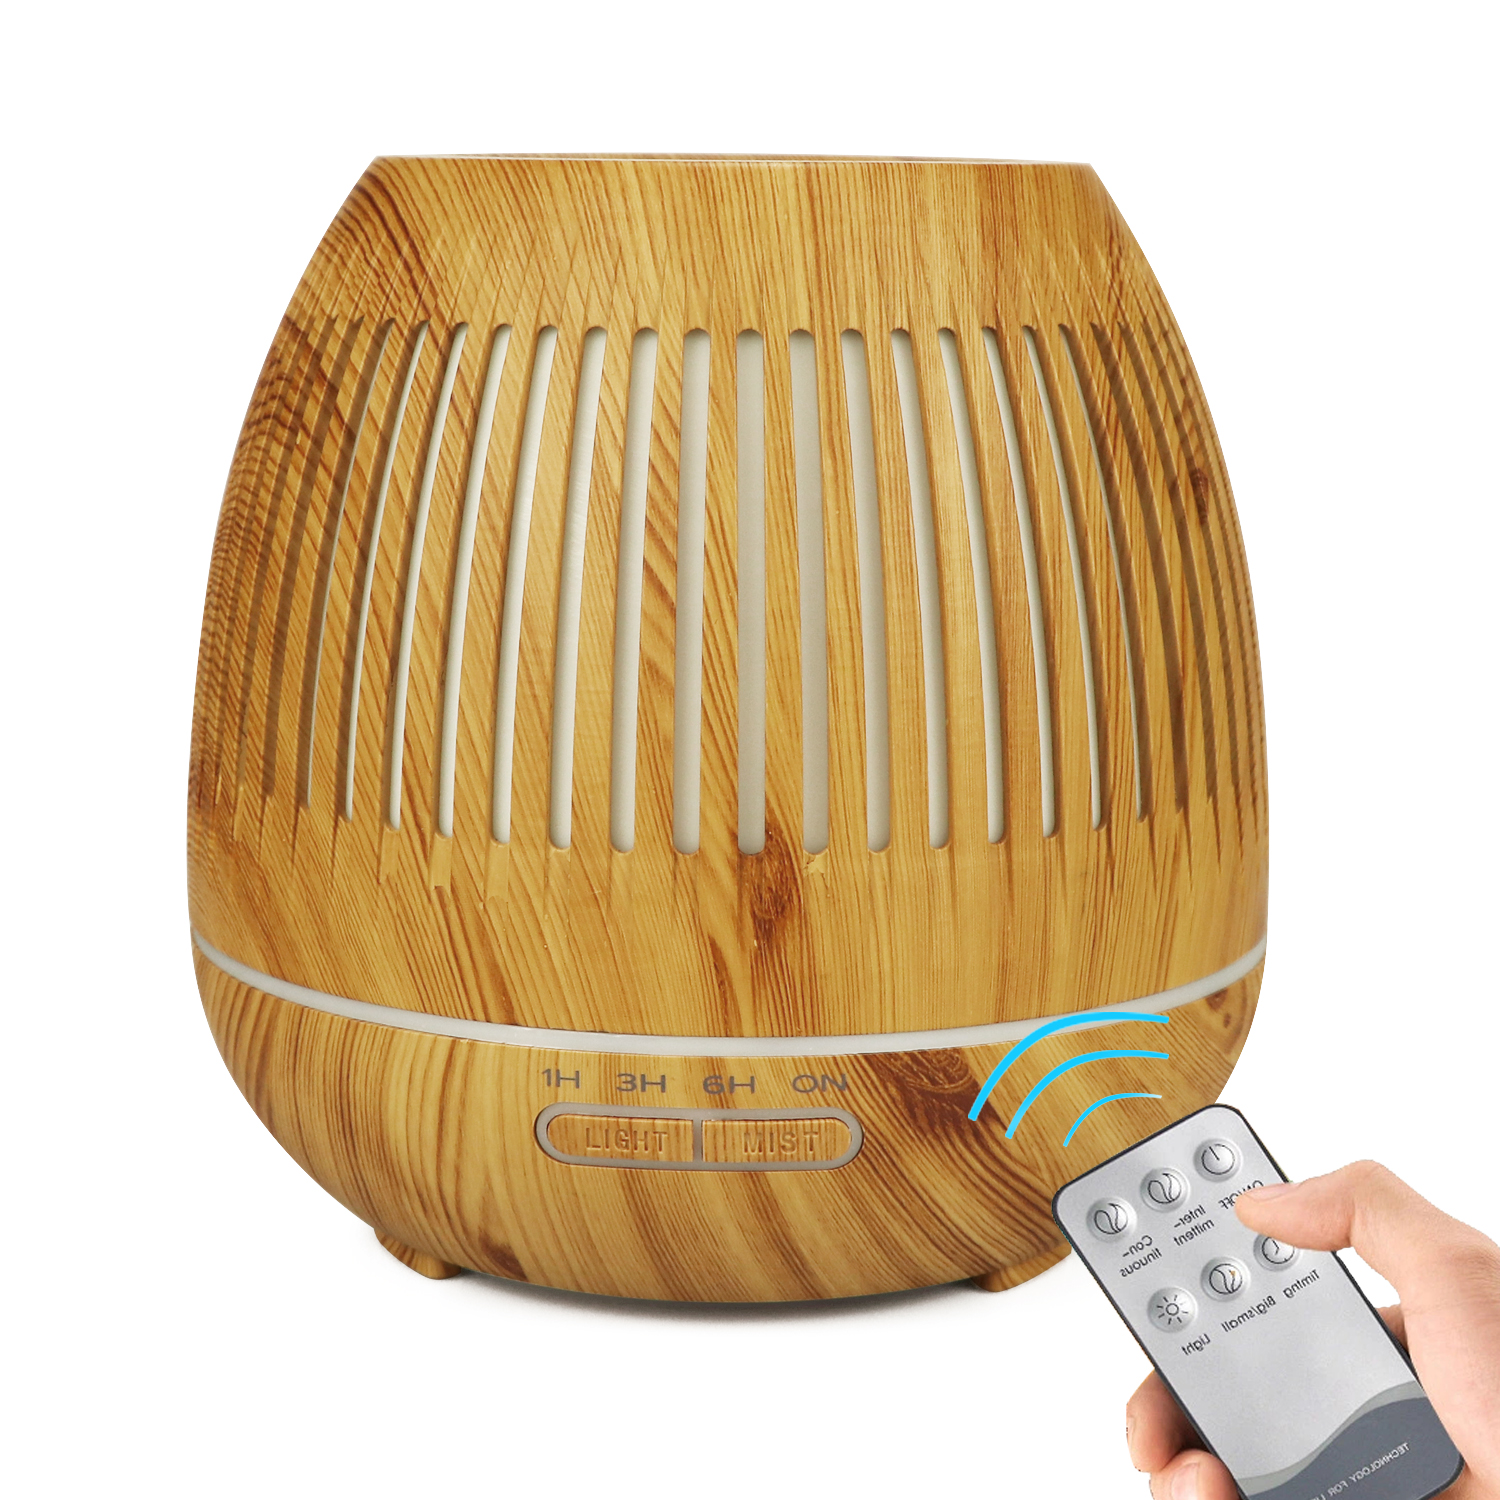 2020 Trustworthy Cheap And Reliable Essential Oil Personal Portable Electric Ultrasonic Diffuser